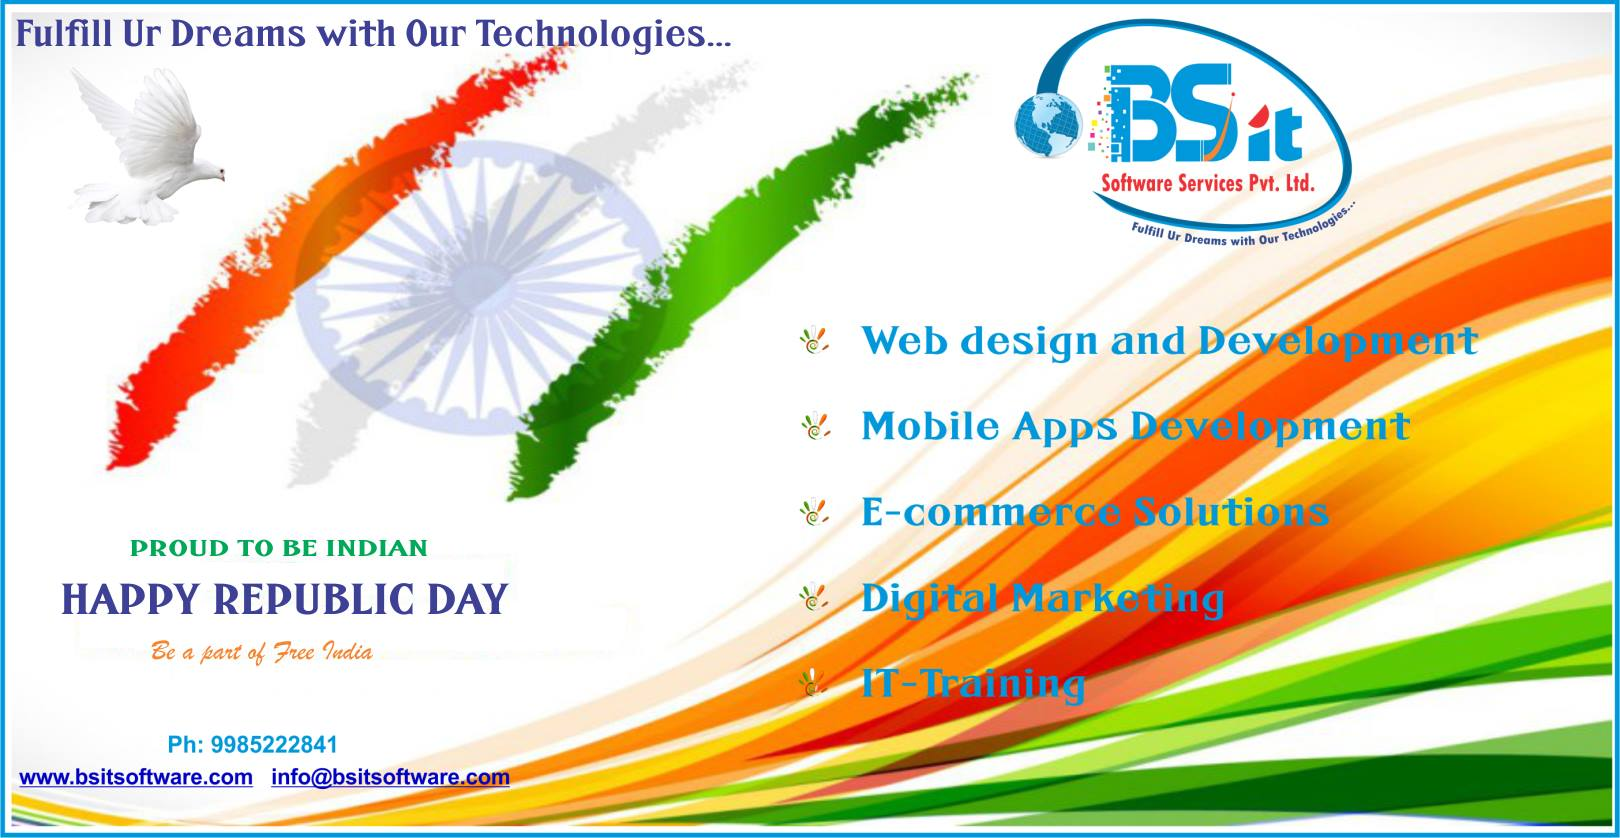 BSIT Software Services